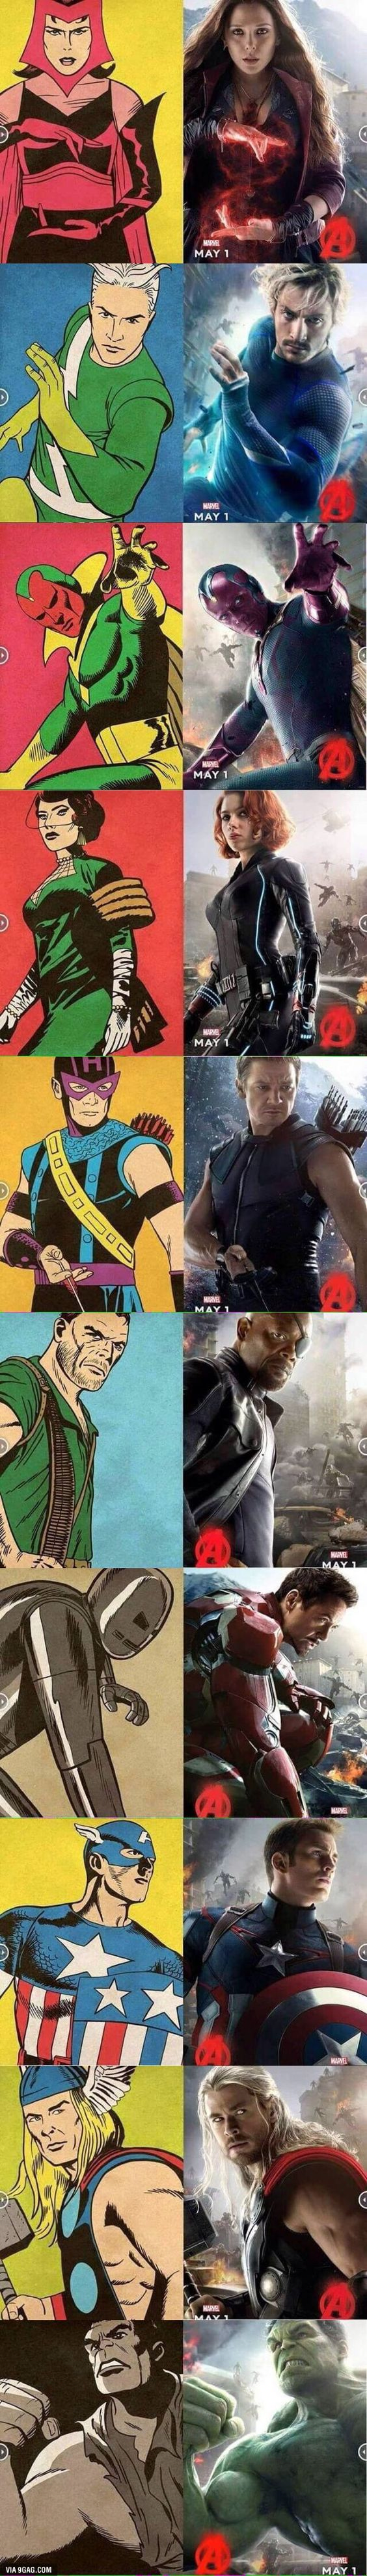 From the comics to the big screen.